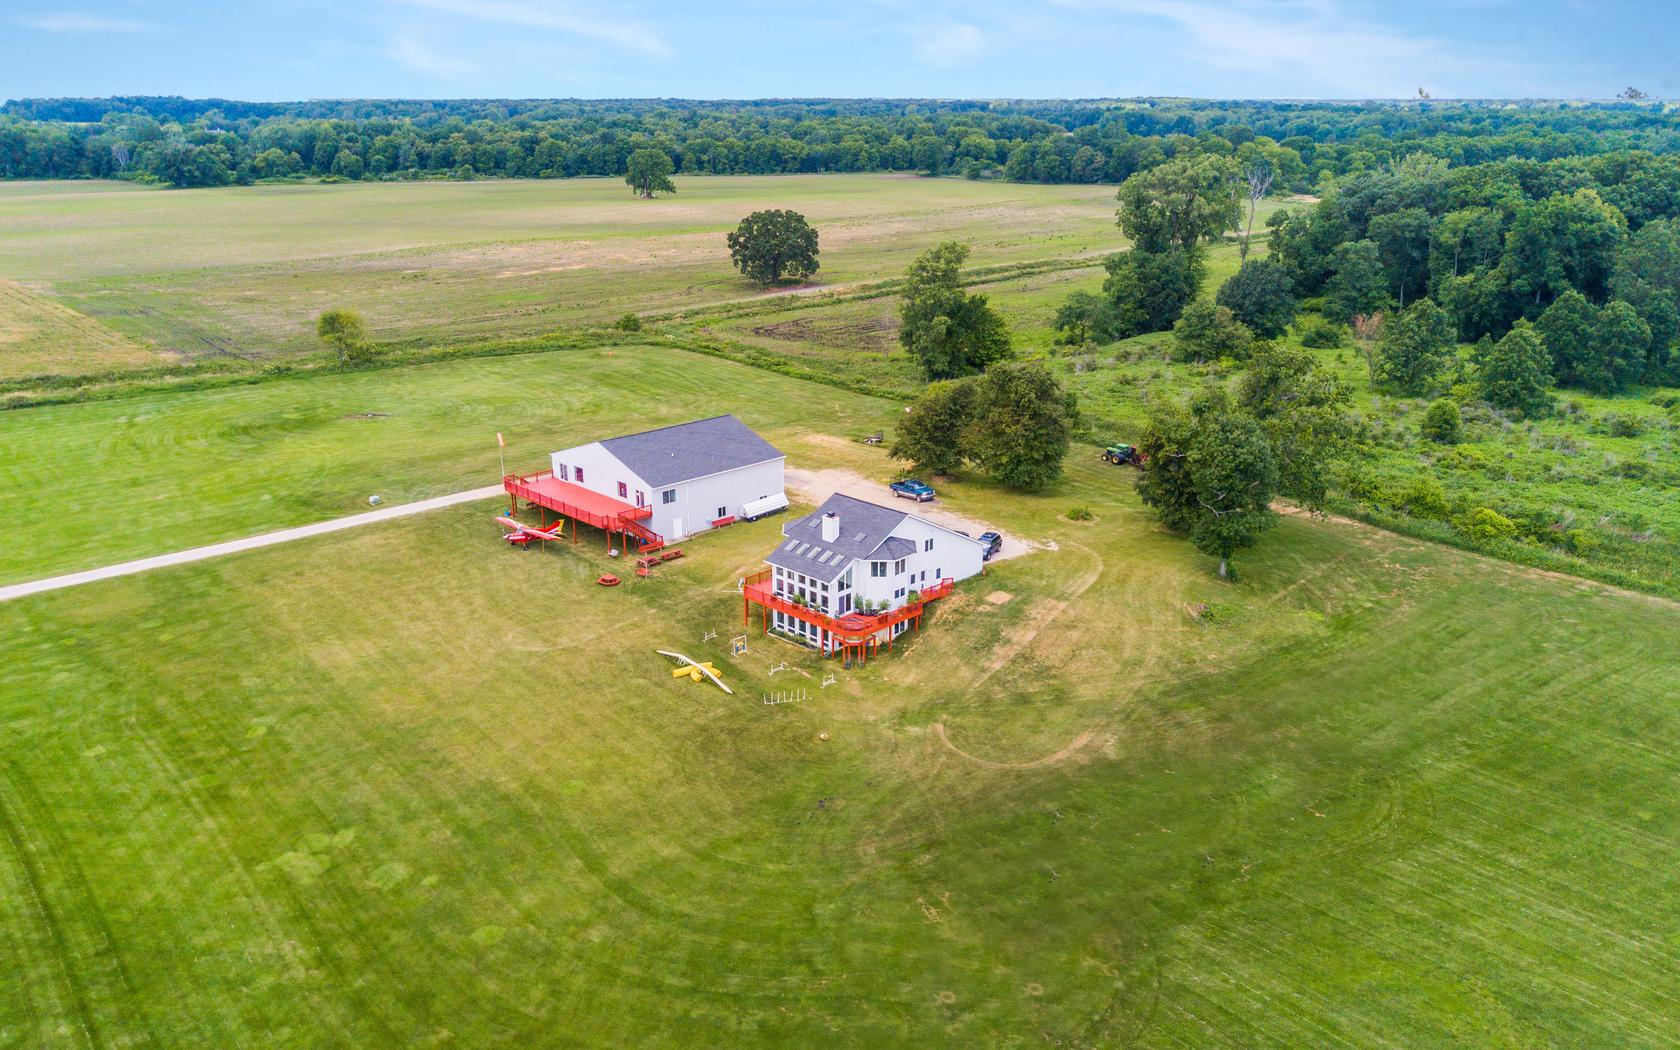 Executive Home and Outbuilding with Observation Deck